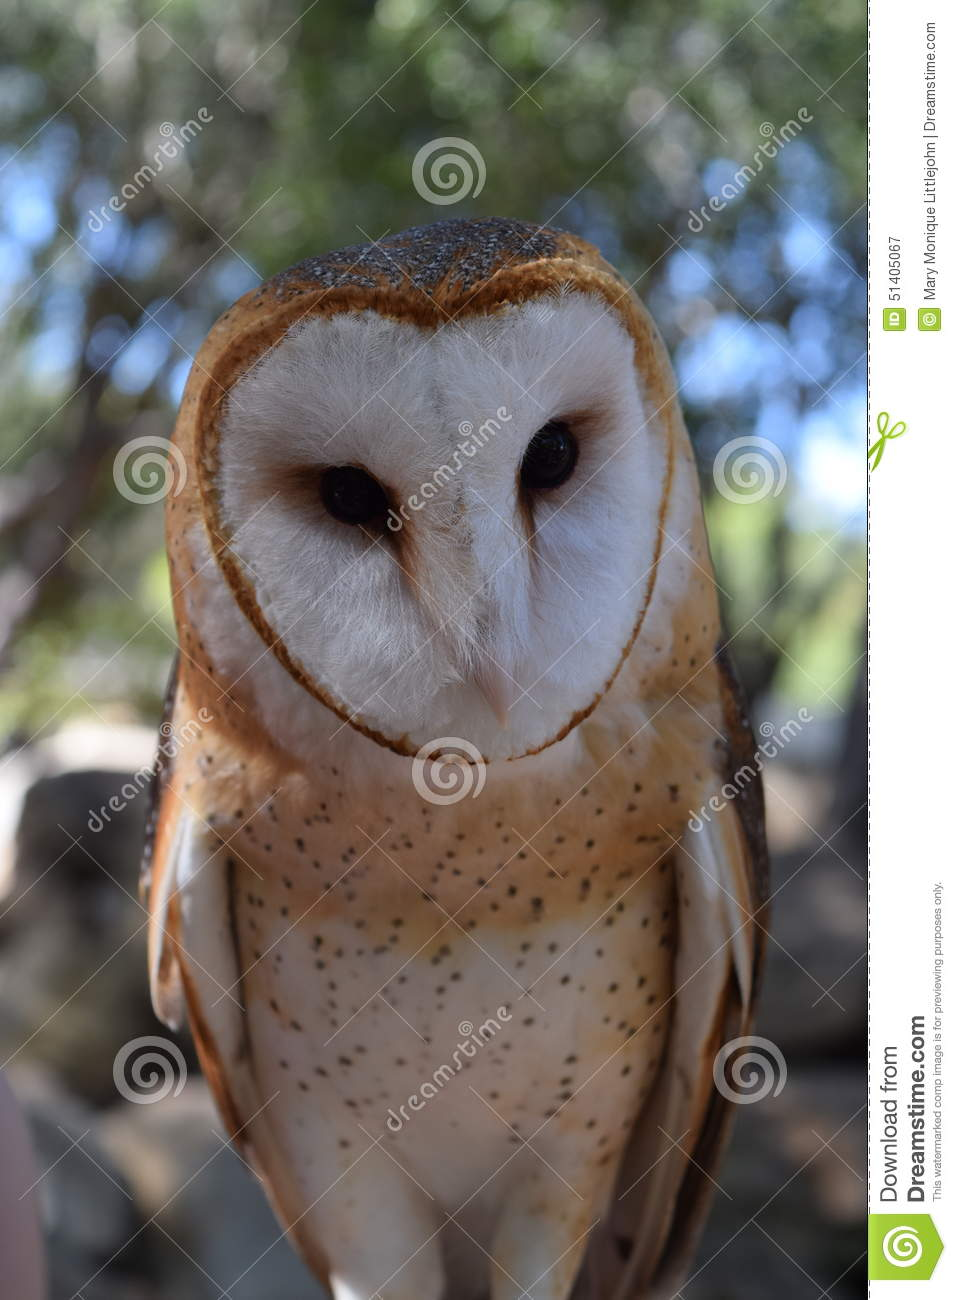 Barn Owl Looking Directly At The Camera Stock Image ...